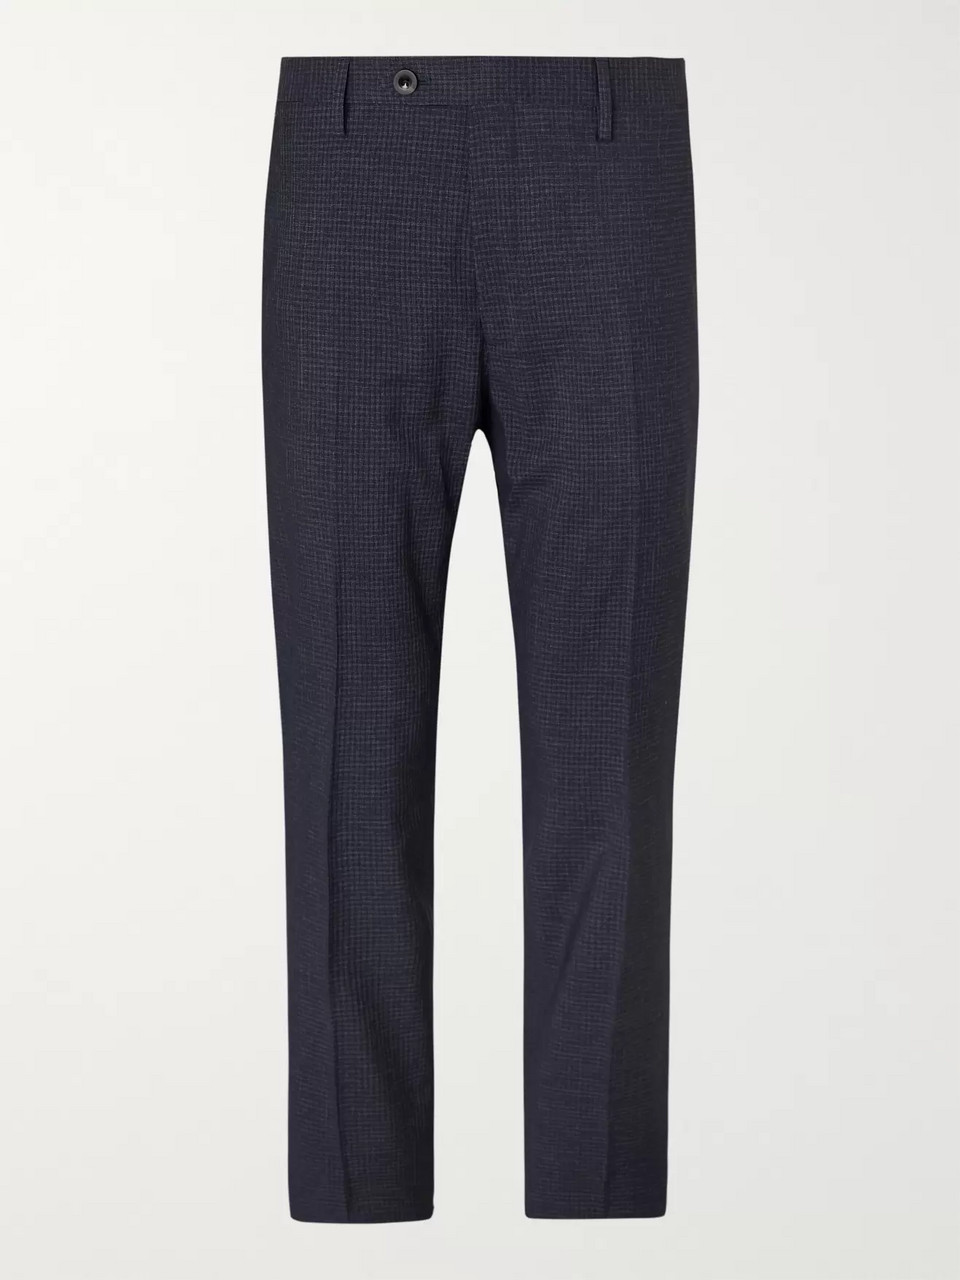 Mr P. Slim-Fit Navy Checked Super 100s Wool-Blend Trousers